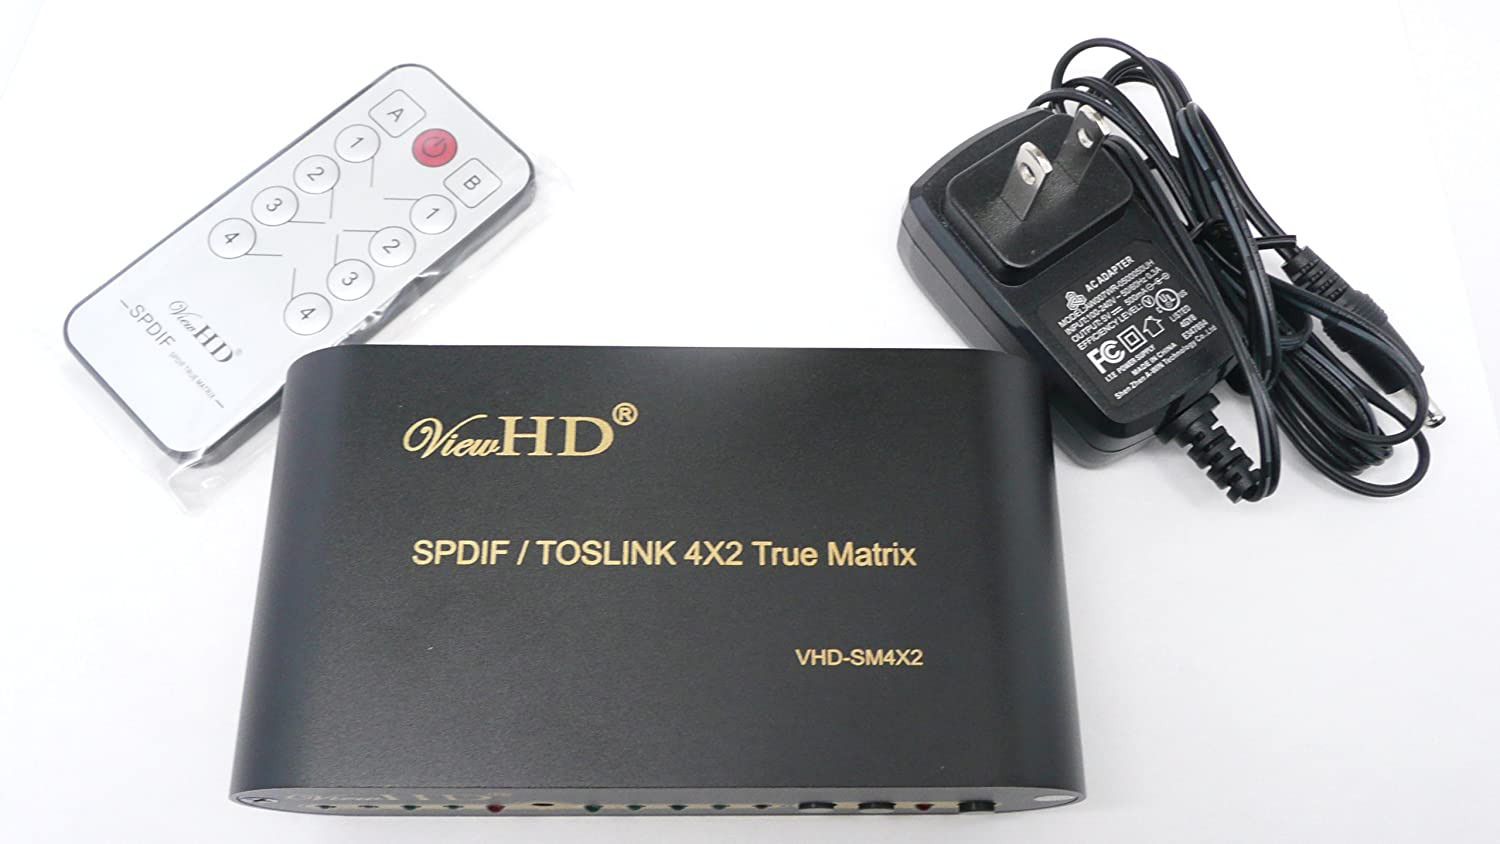 ViewHD SPDIF / TOSLINK Optical Digital Audio 4x2 True Matrix with Remote Control | VHD-SM4X2 U9LTD